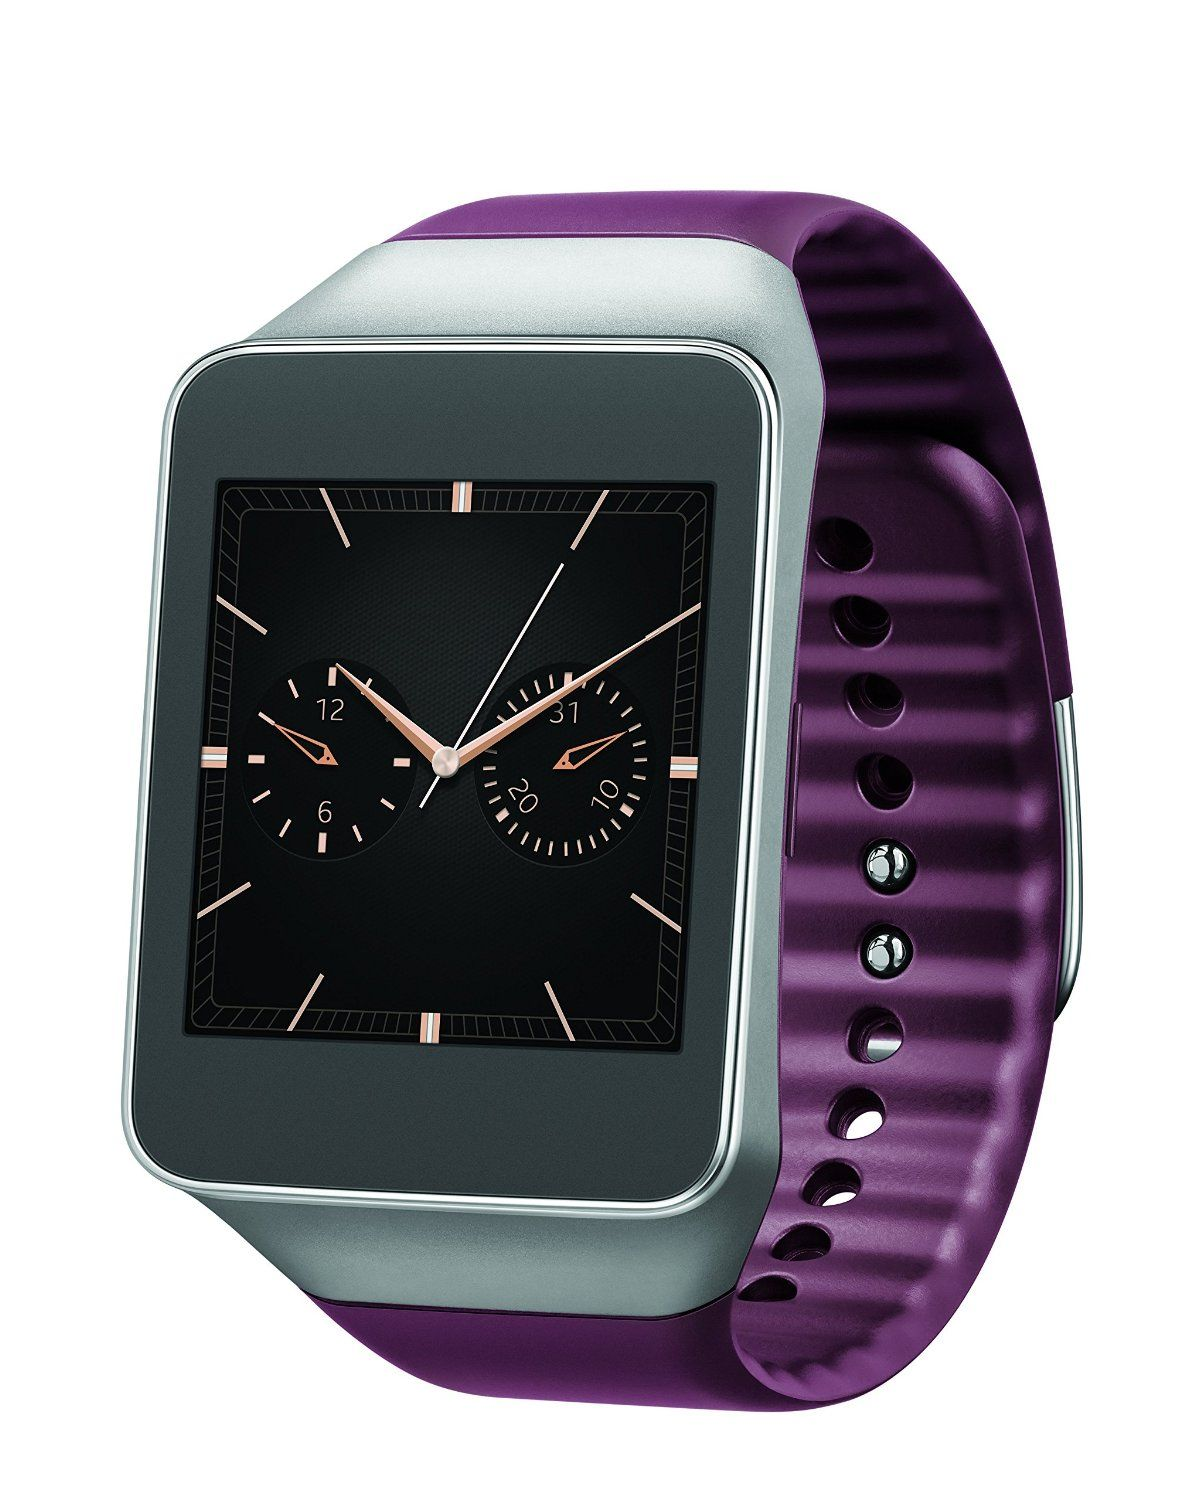 Live Samsung Gear Smartwatch For more information